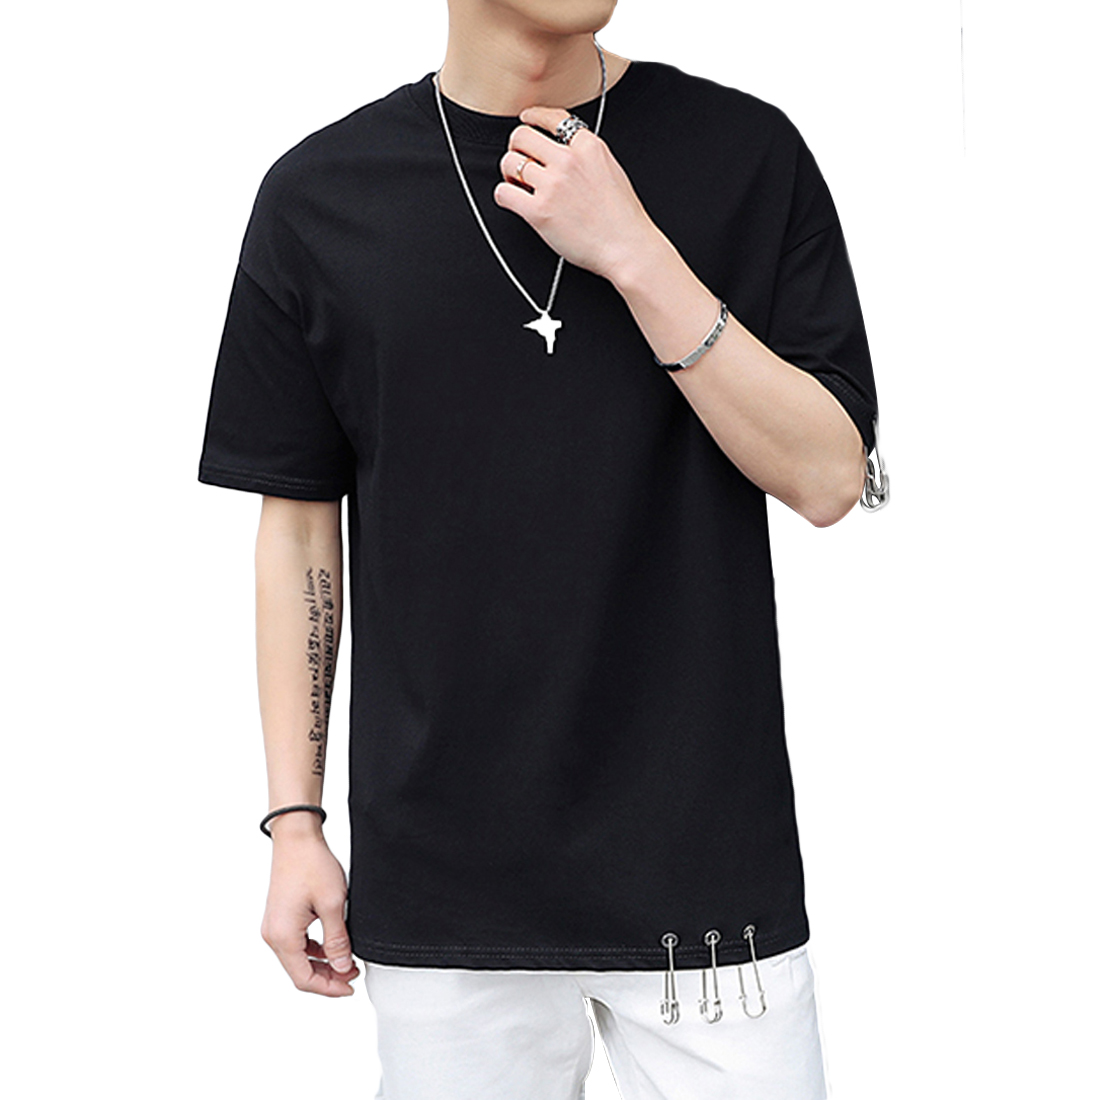 Black t shirt white cross on back - Cool T Shirt Back Criss Cross Lace Up Patchwork Youth Loose Fit T Shirt Short Sleeve